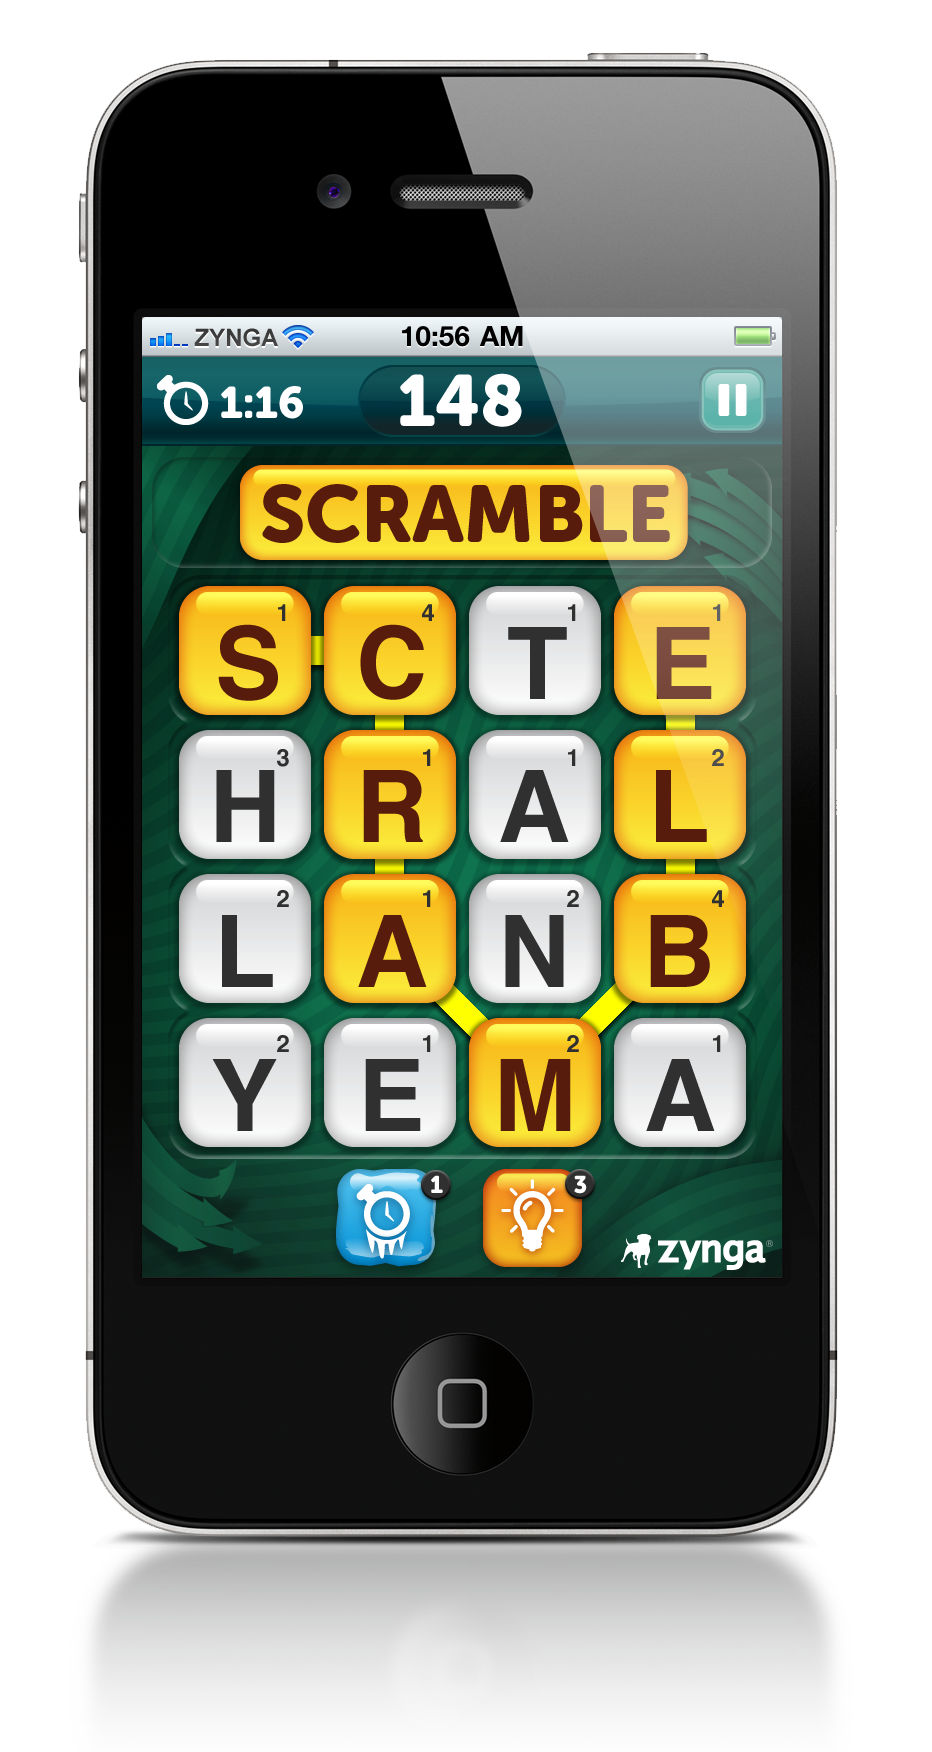 Addicted scramble with friends Iphone apps, Iphone